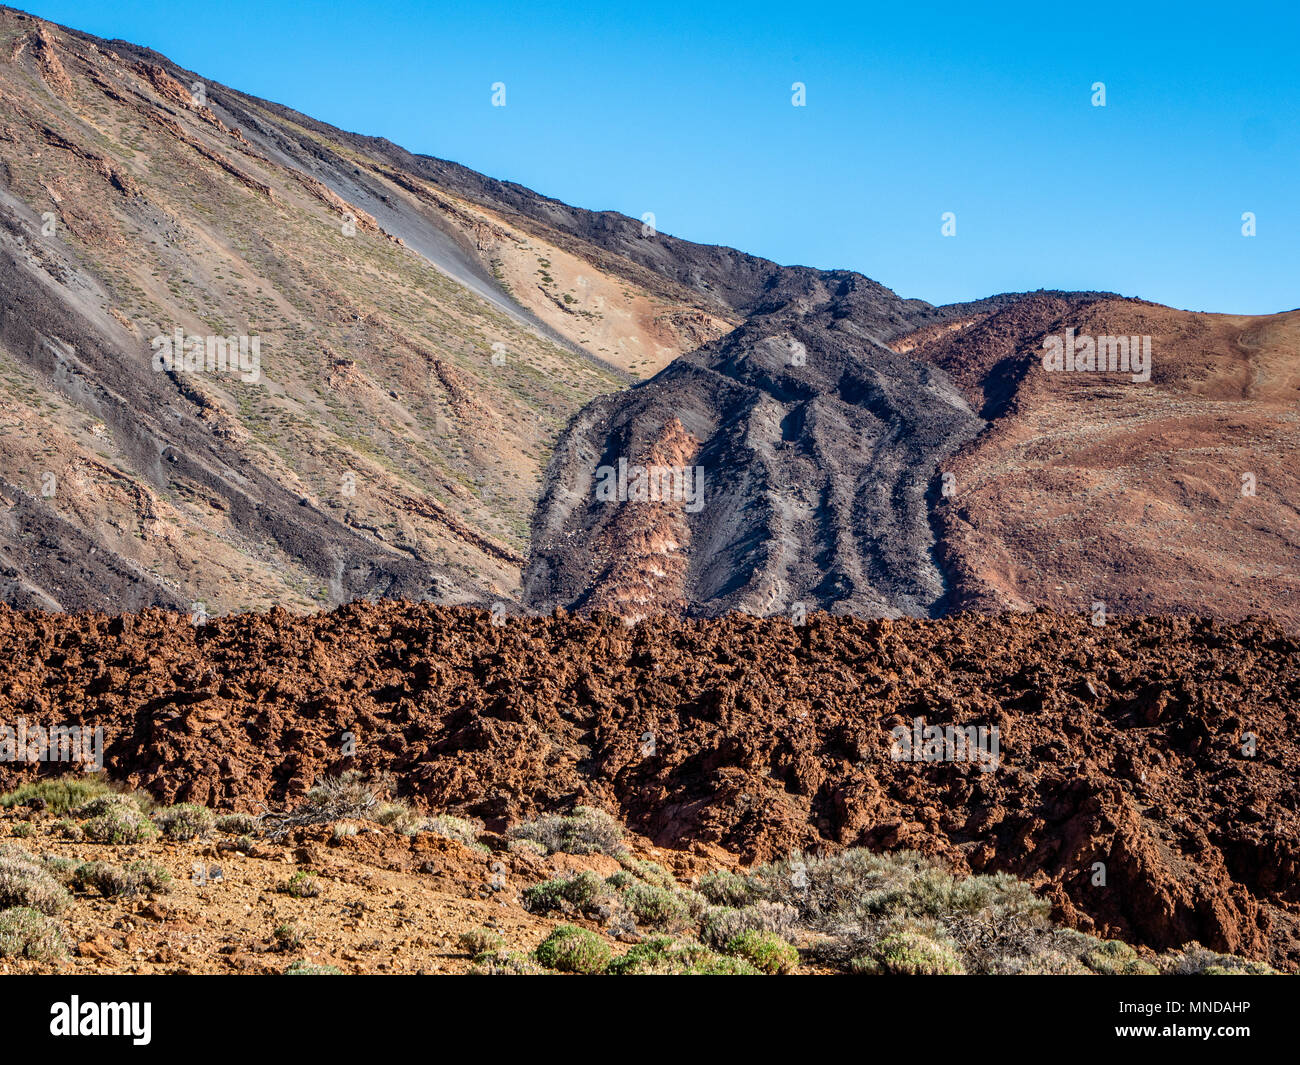 Old lava flow solidified in its descent of the cone of Teide volcano with weatherd aa lava front in foreground - Tenerife Canary Islands - Stock Image